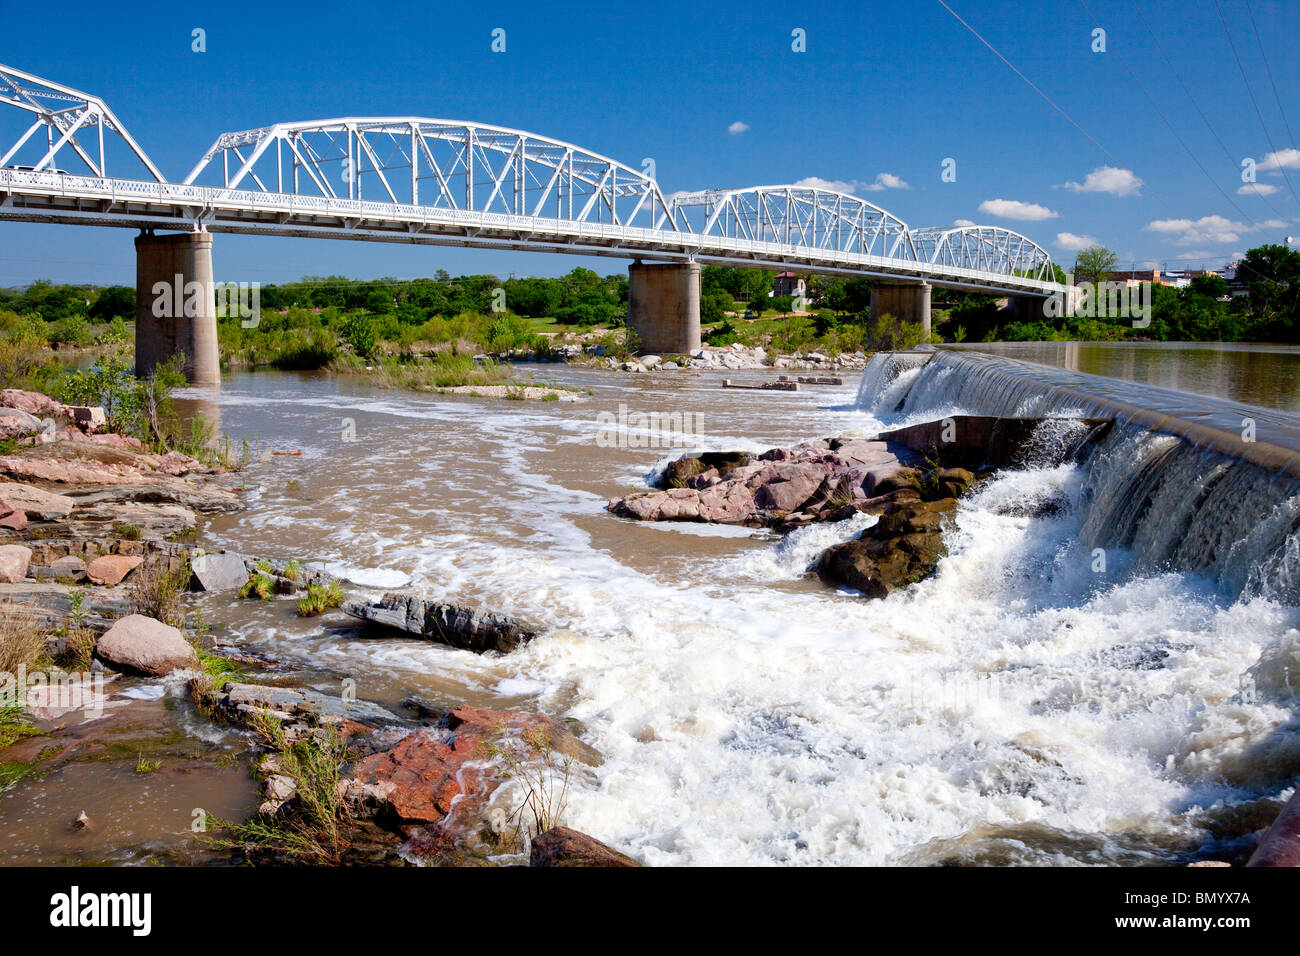 A bridge, dam and waterfall on the Llano river, Llano, Texas, USA. - Stock Image